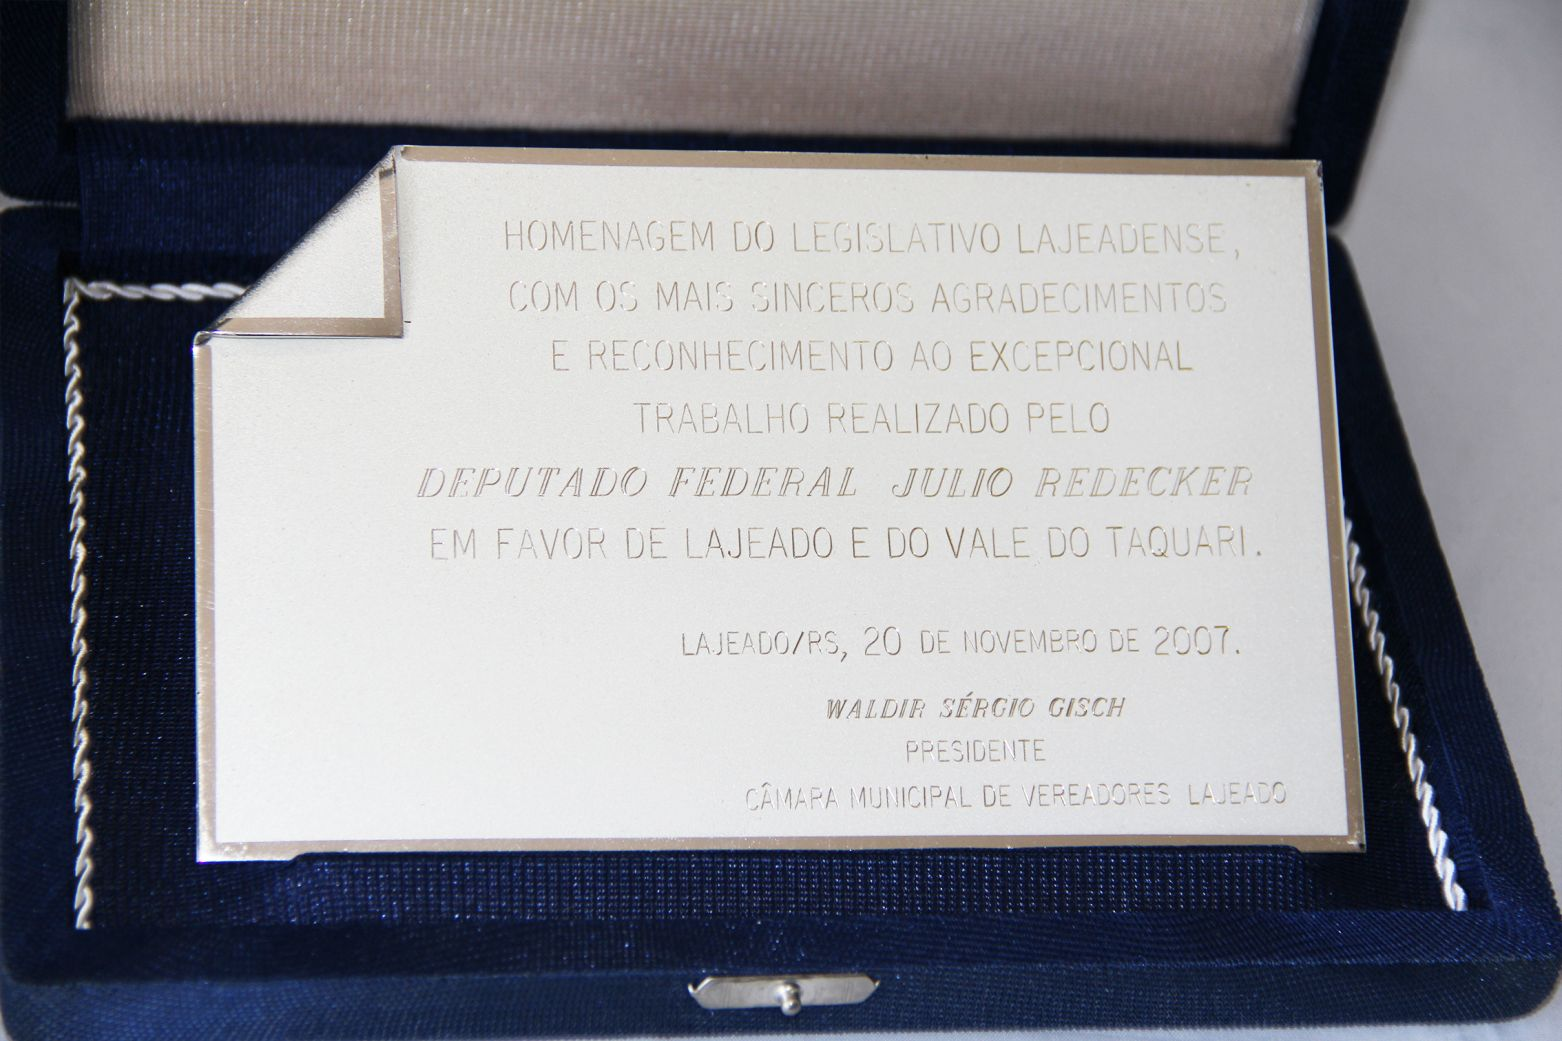 5be4632834f80-homenagem-postuma-do-legislativo-de-lajeado-2007.jpg